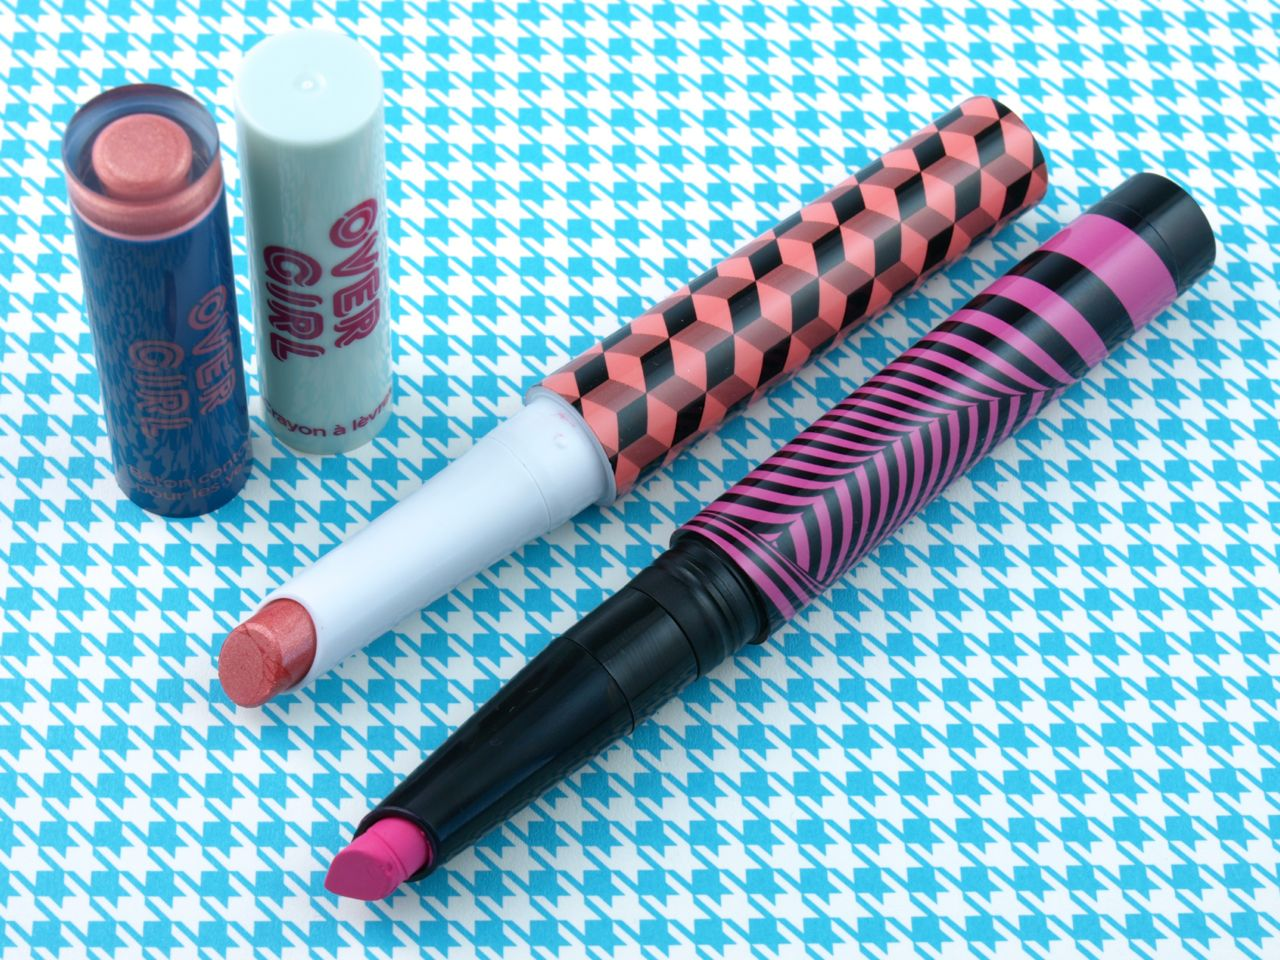 The Face Shop Overgirl Edge Lip Crayon & Edge Stick Eyes: Review and Swatches